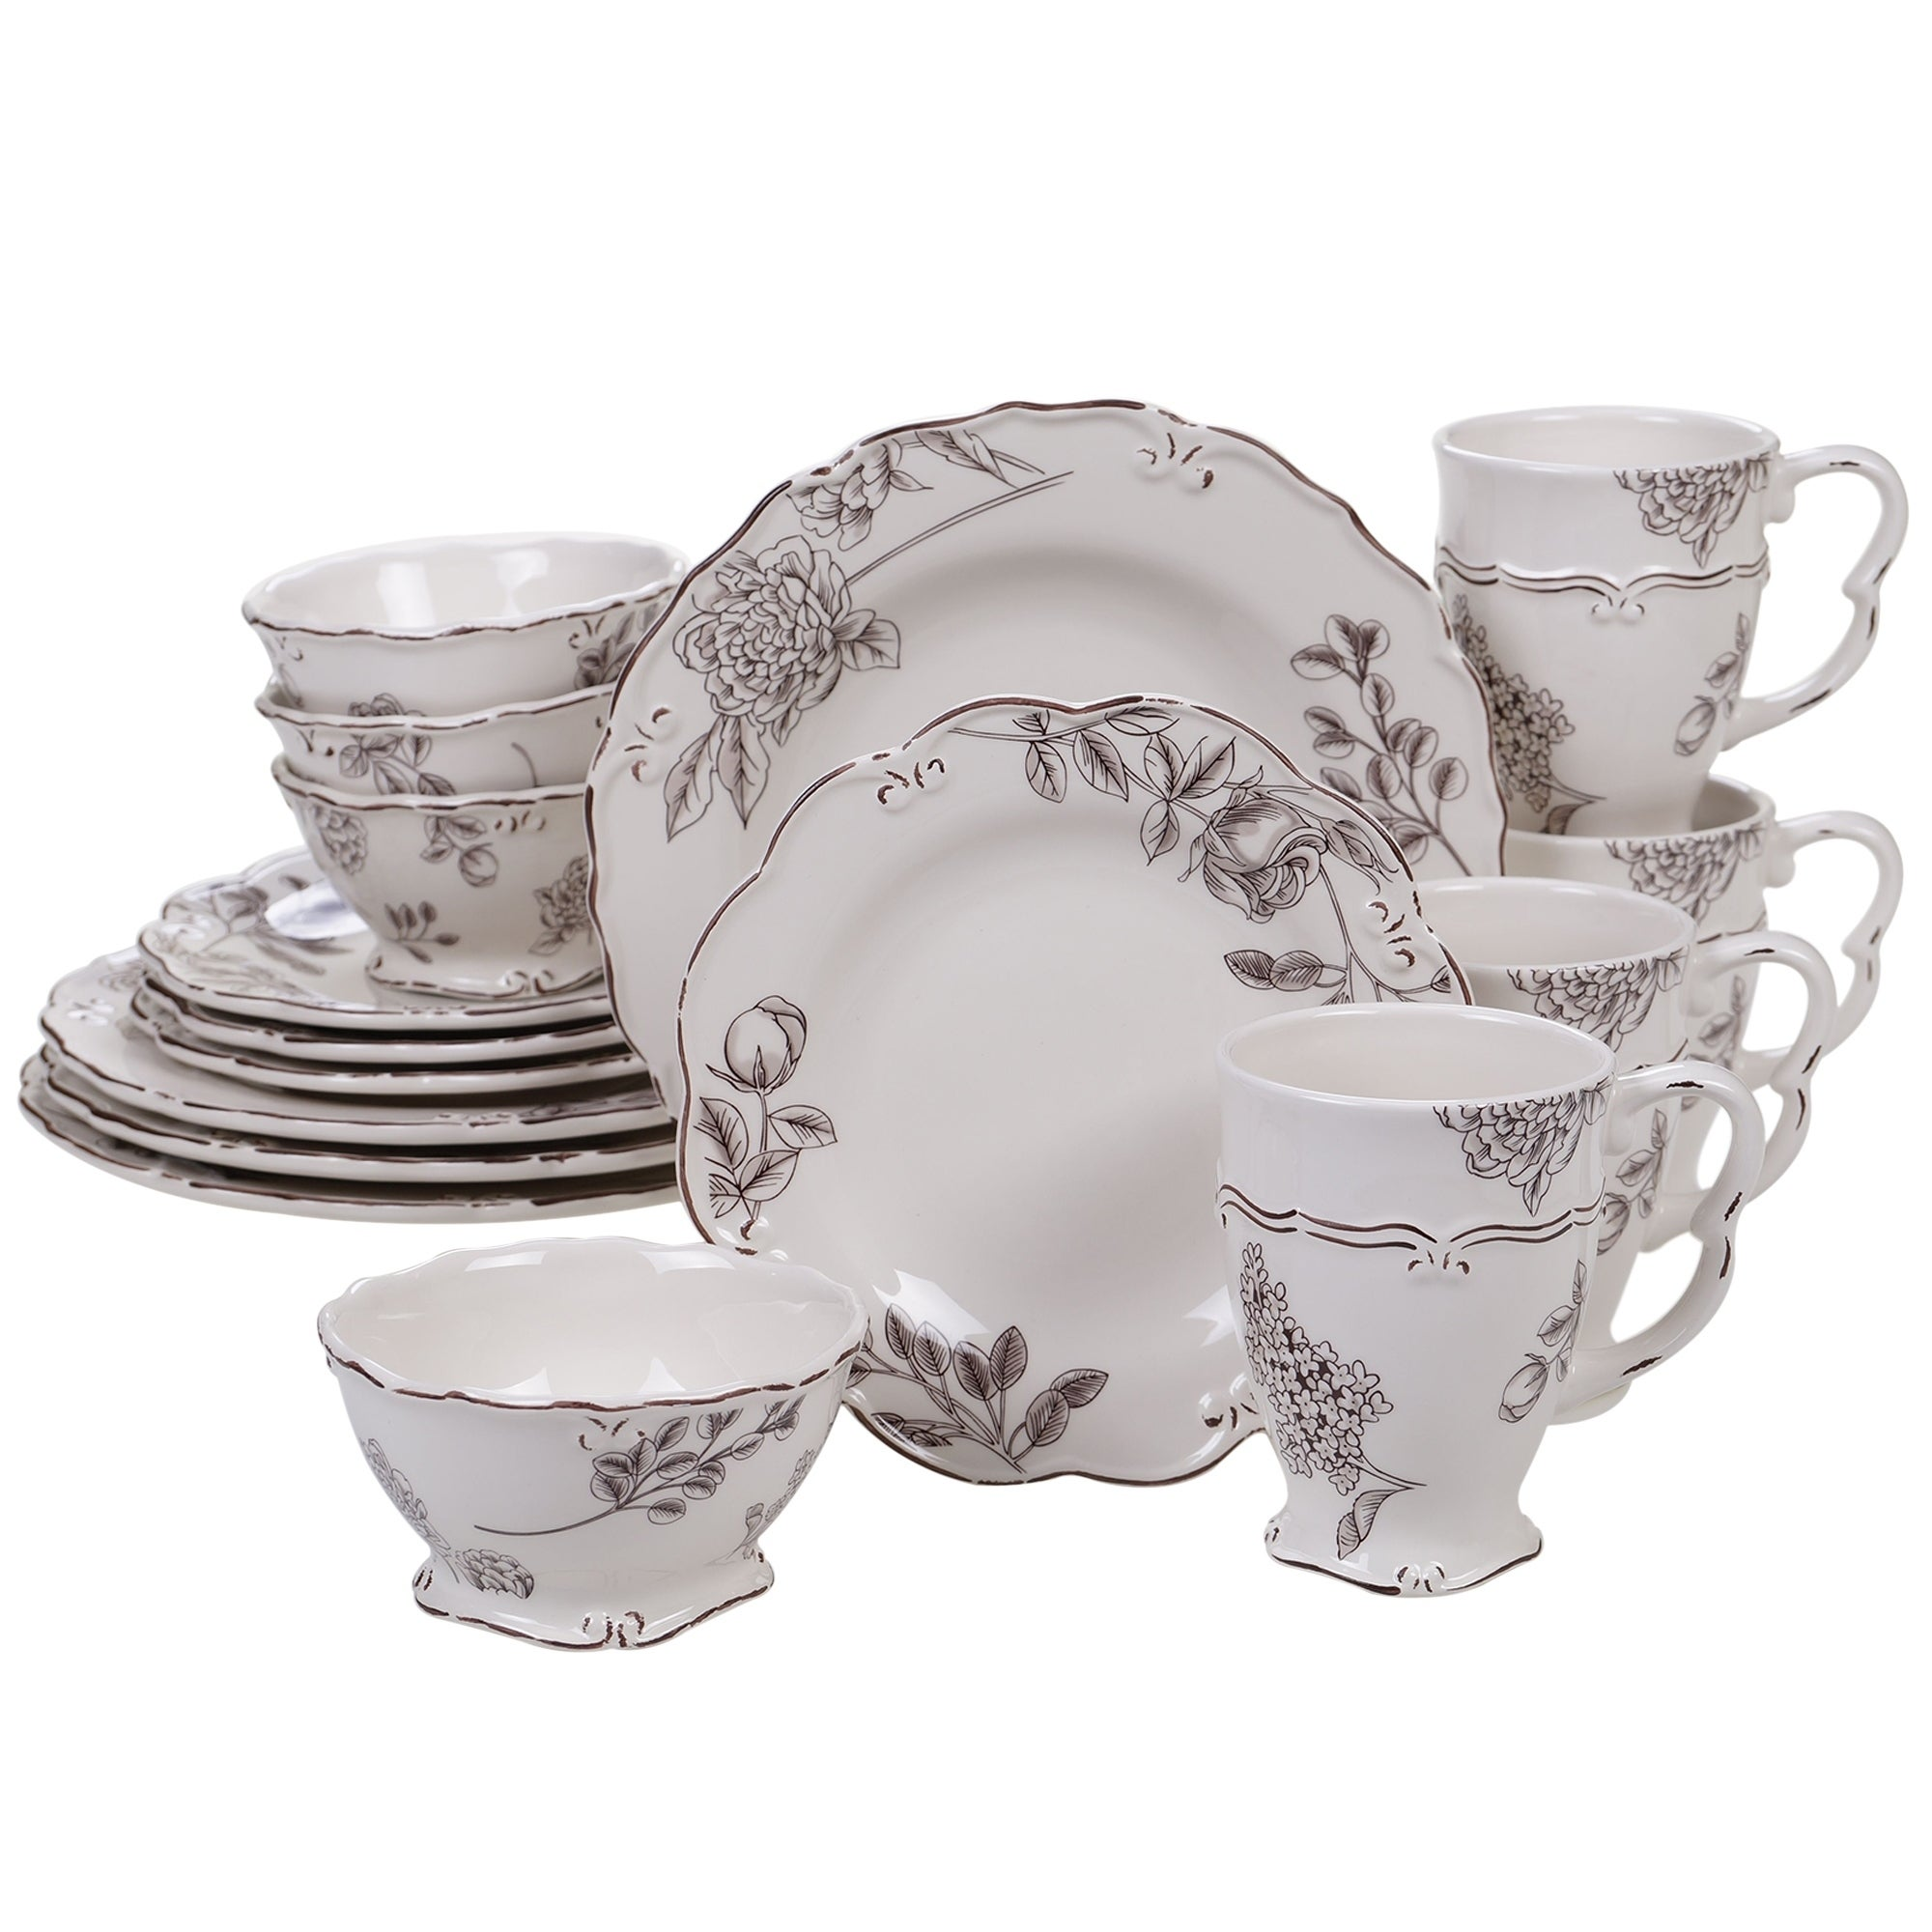 Certified International Vintage Cream With Floral 16 Piece Dinnerware Set Service For 4 Overstock 23174268